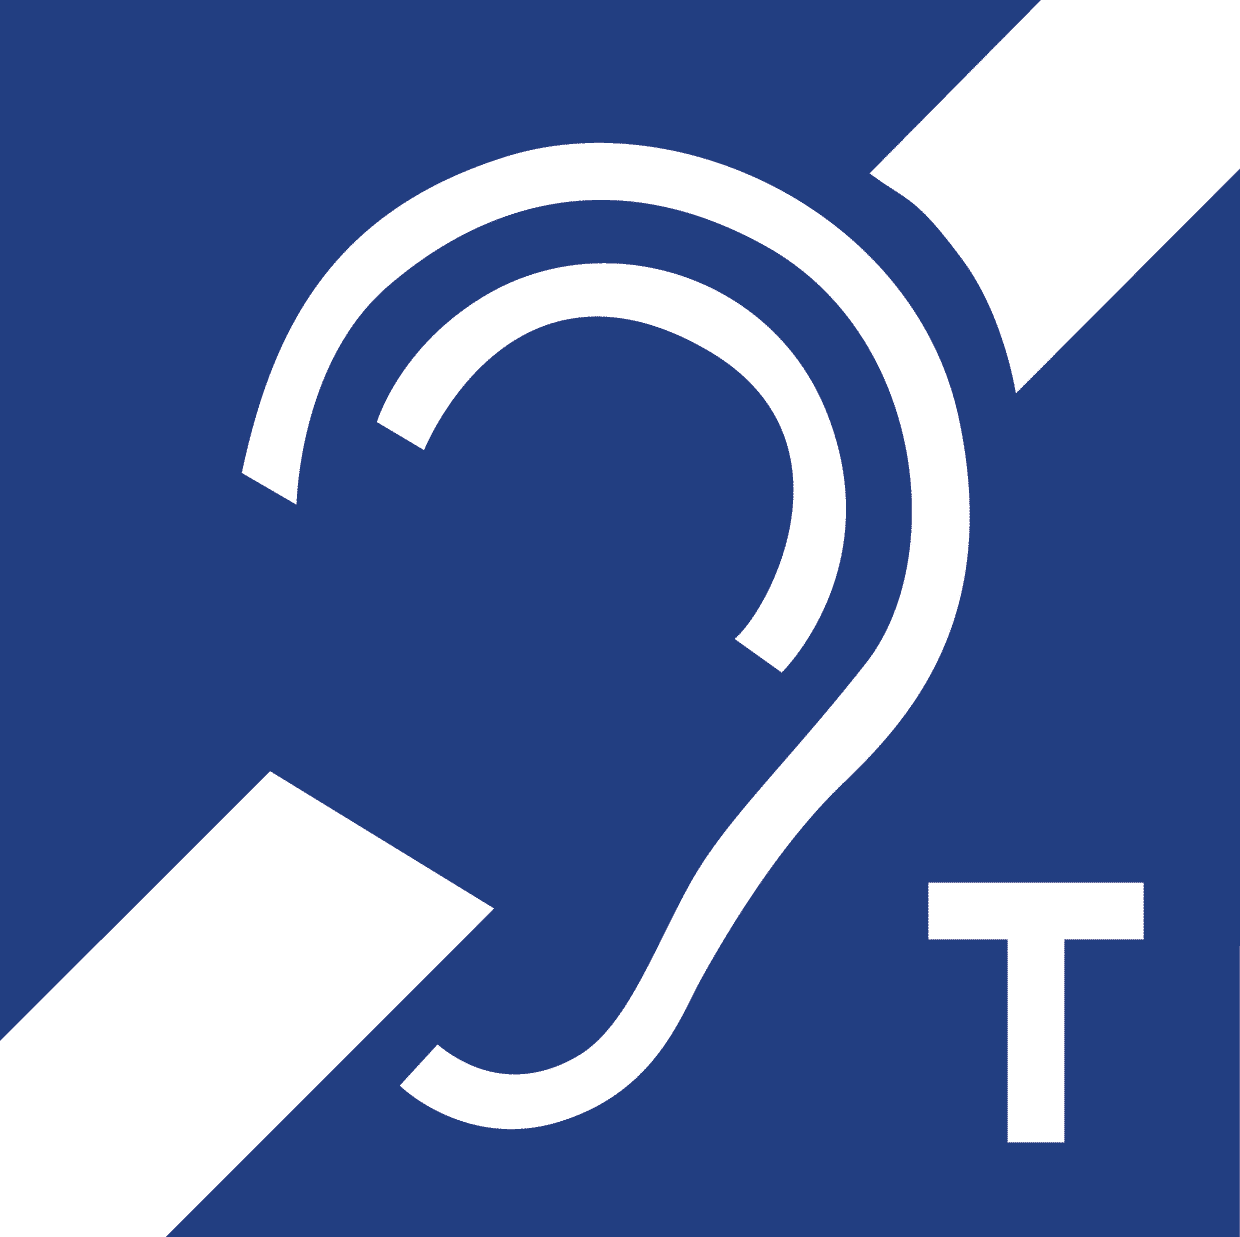 Induction loop signage